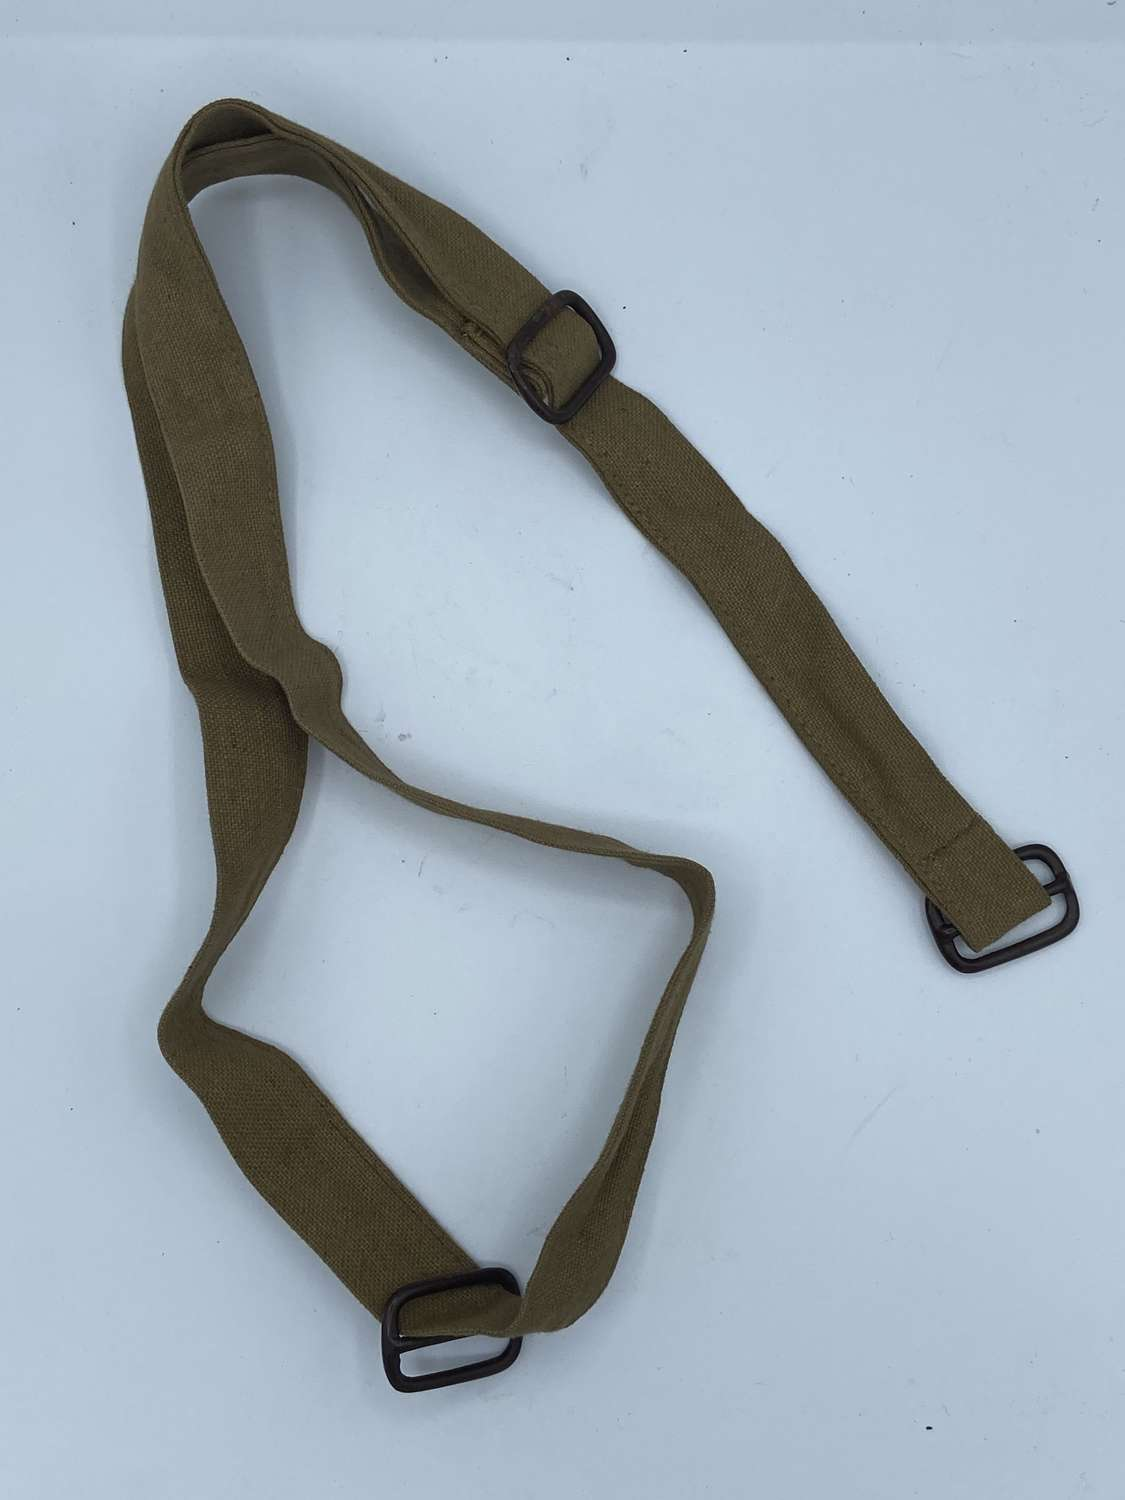 WW2 German Hitler Youth Bread Bag Spare Strap